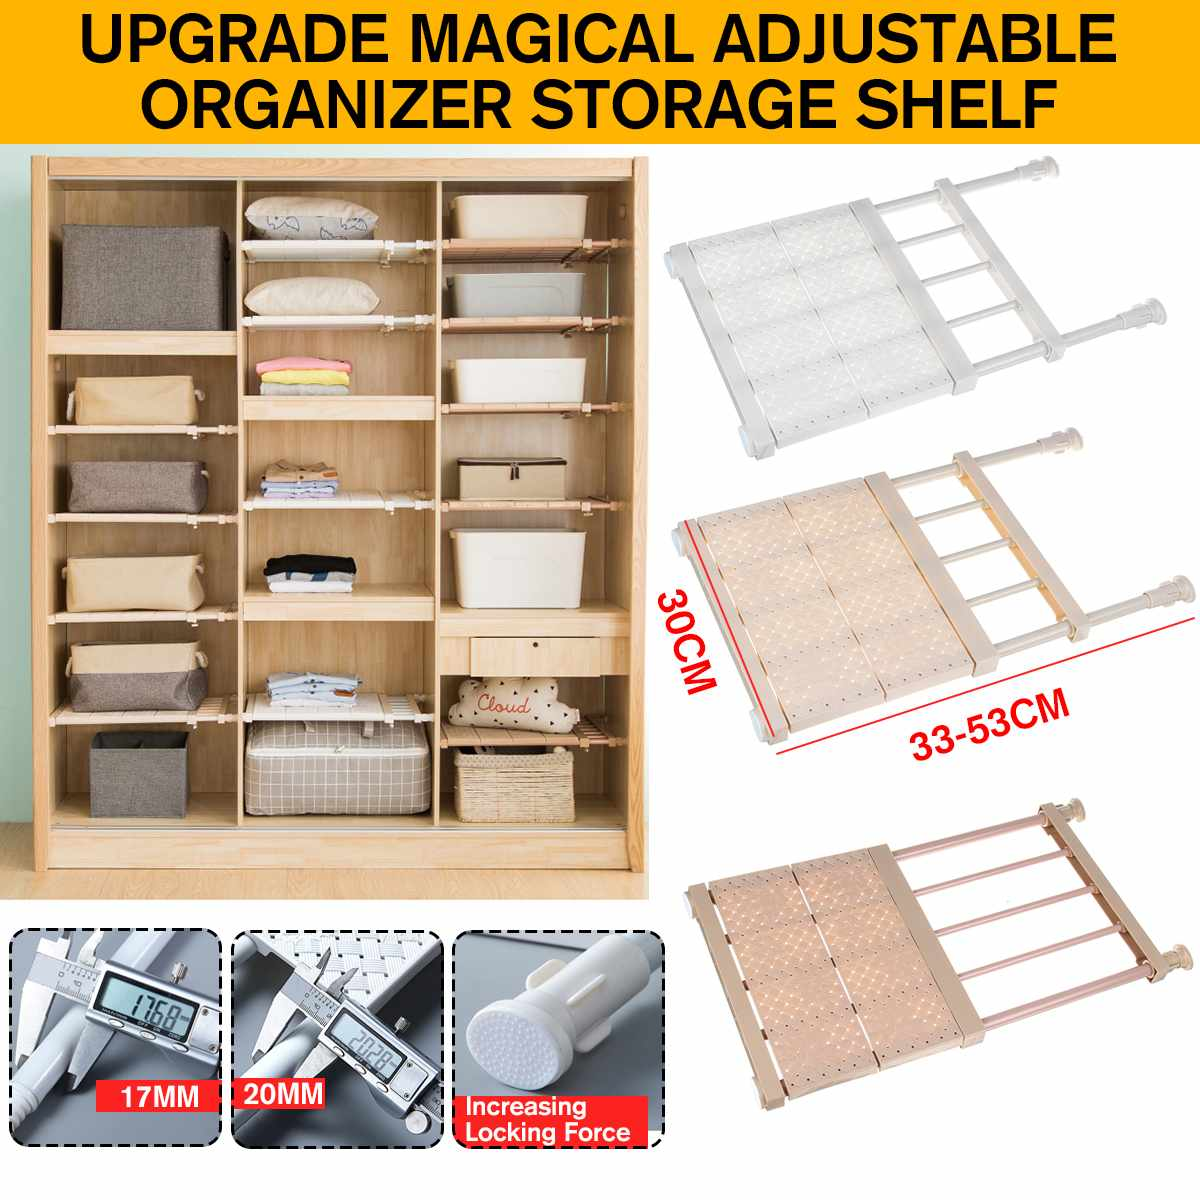 30CM Width Adjustable Closet Organizer Storage Shelf Wall Mounted Kitchen Rack Space Saving Wardrobe Shelves Cabinet Holders